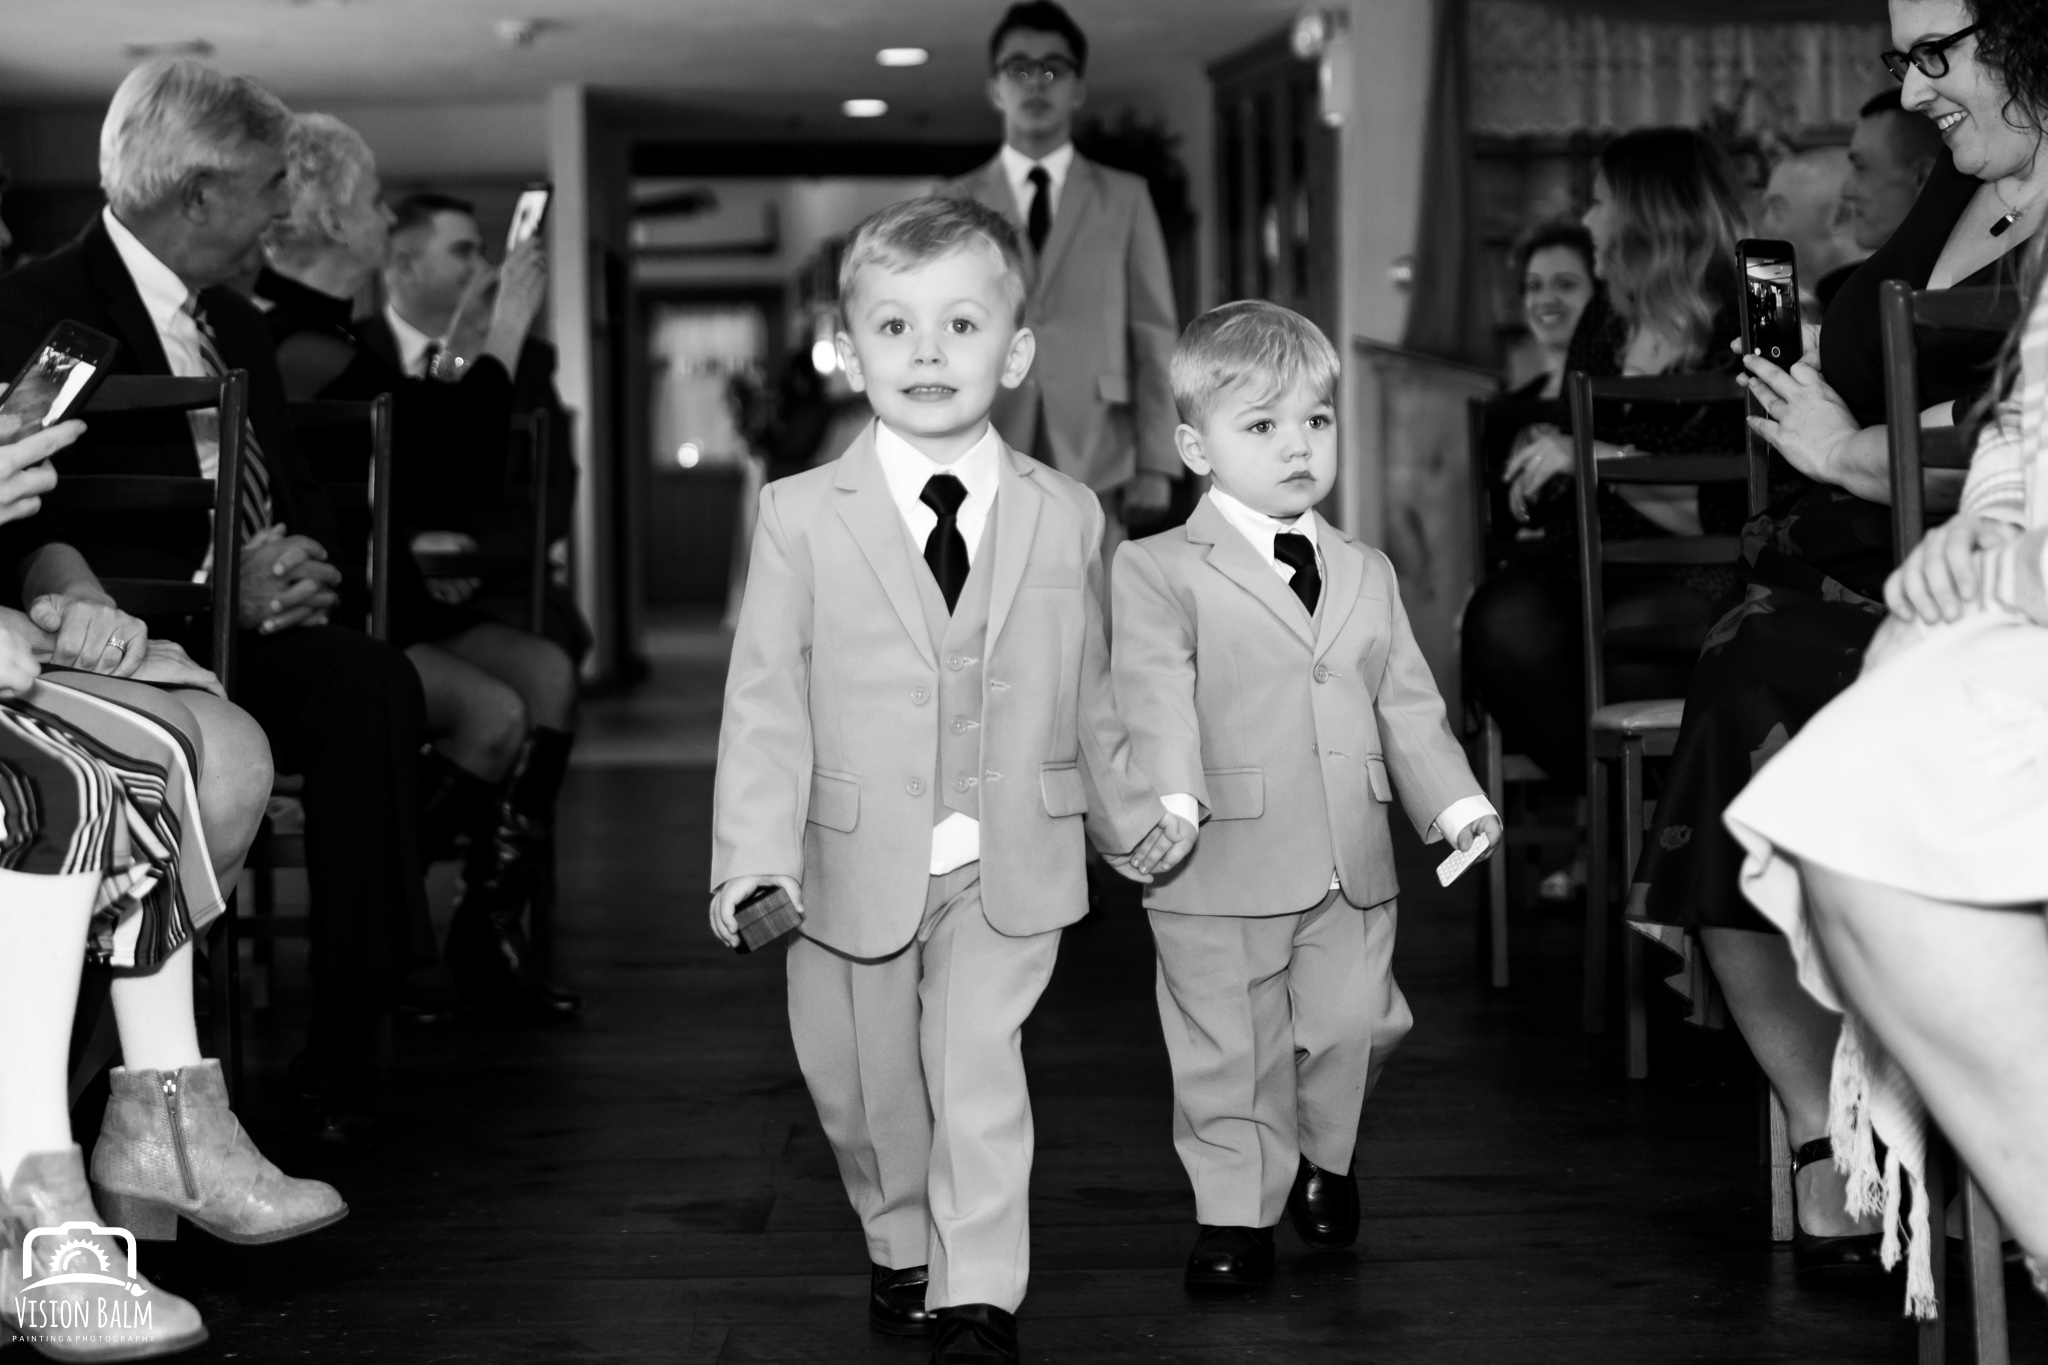 Lifestyle wedding photo of sons of bride in suits walking down the aisle in Zuka's Hilltop Barn by Vision Balm in Charleston, SC.